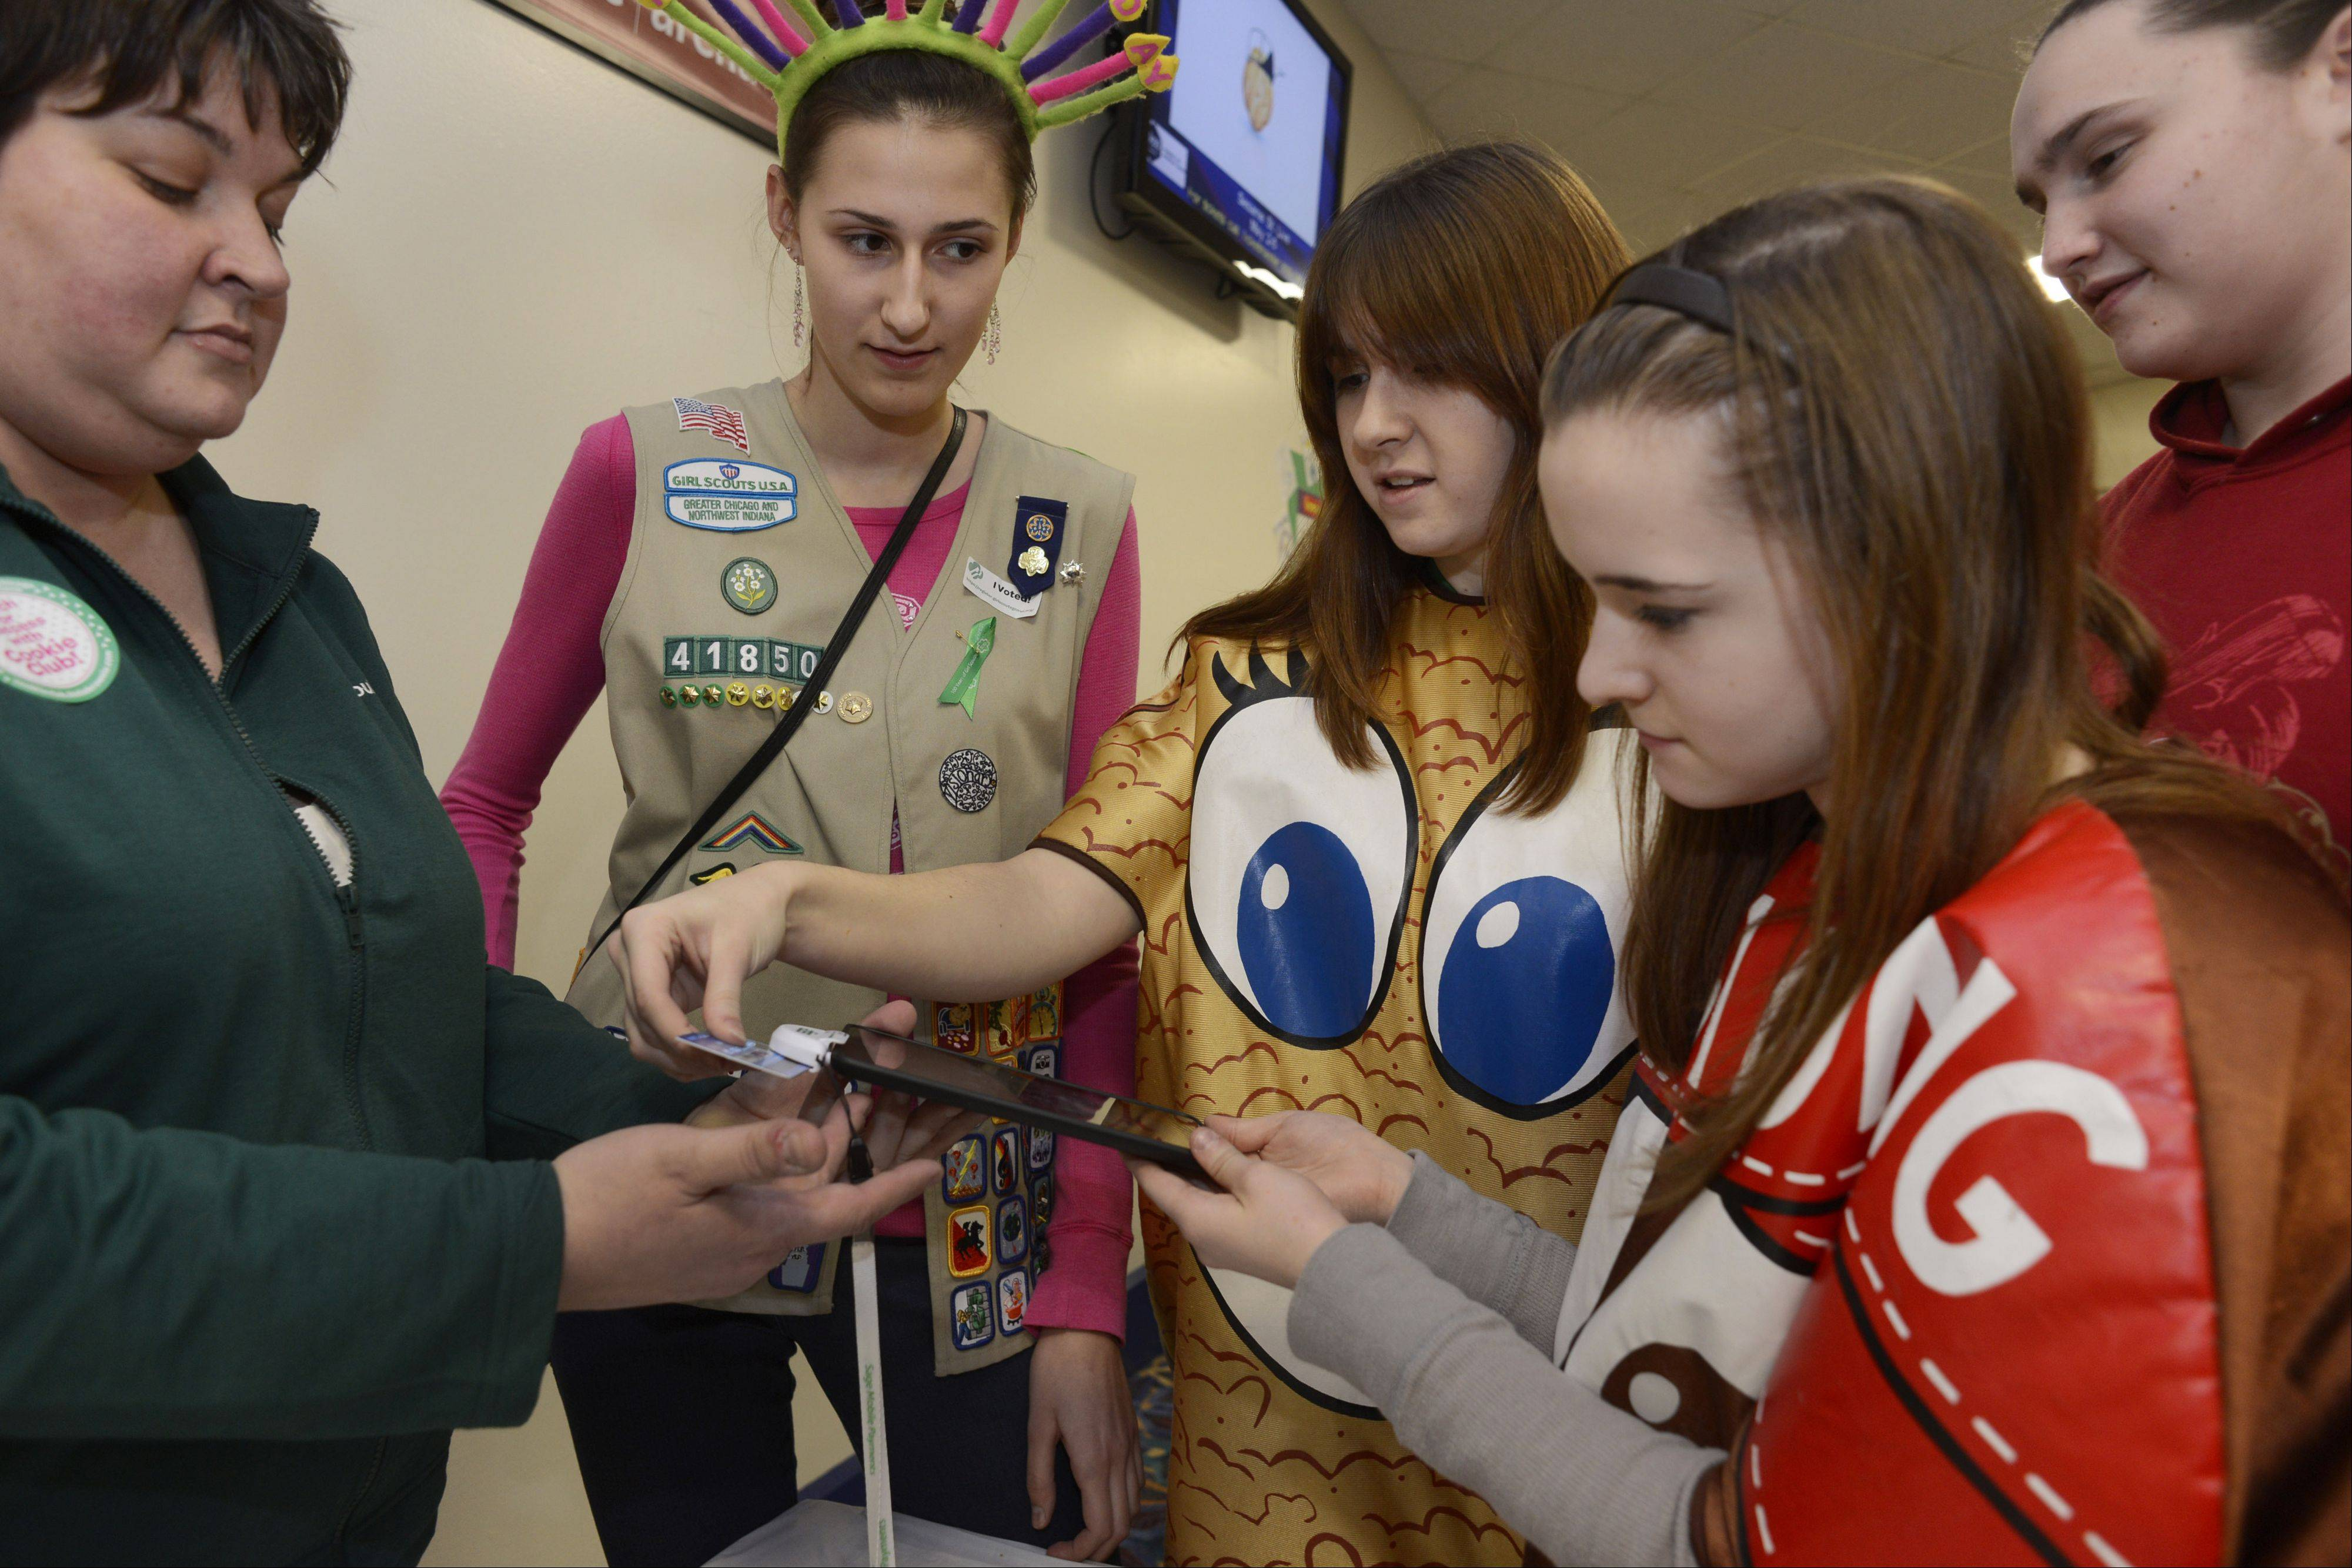 Left to right, Product Program Manager Michelle Kruse shows Tatiana Doroskin, Samantha McKeown, and Madison Korta, all of Schaumburg, and Brianna Randecker of Hoffman Estates how to swipe a credit card as the Girl Scouts of Greater Chicago and Northwest Indiana kicks off its annual Girl Scout Cookie Program Saturday at the Allstate Arena in Rosemont.